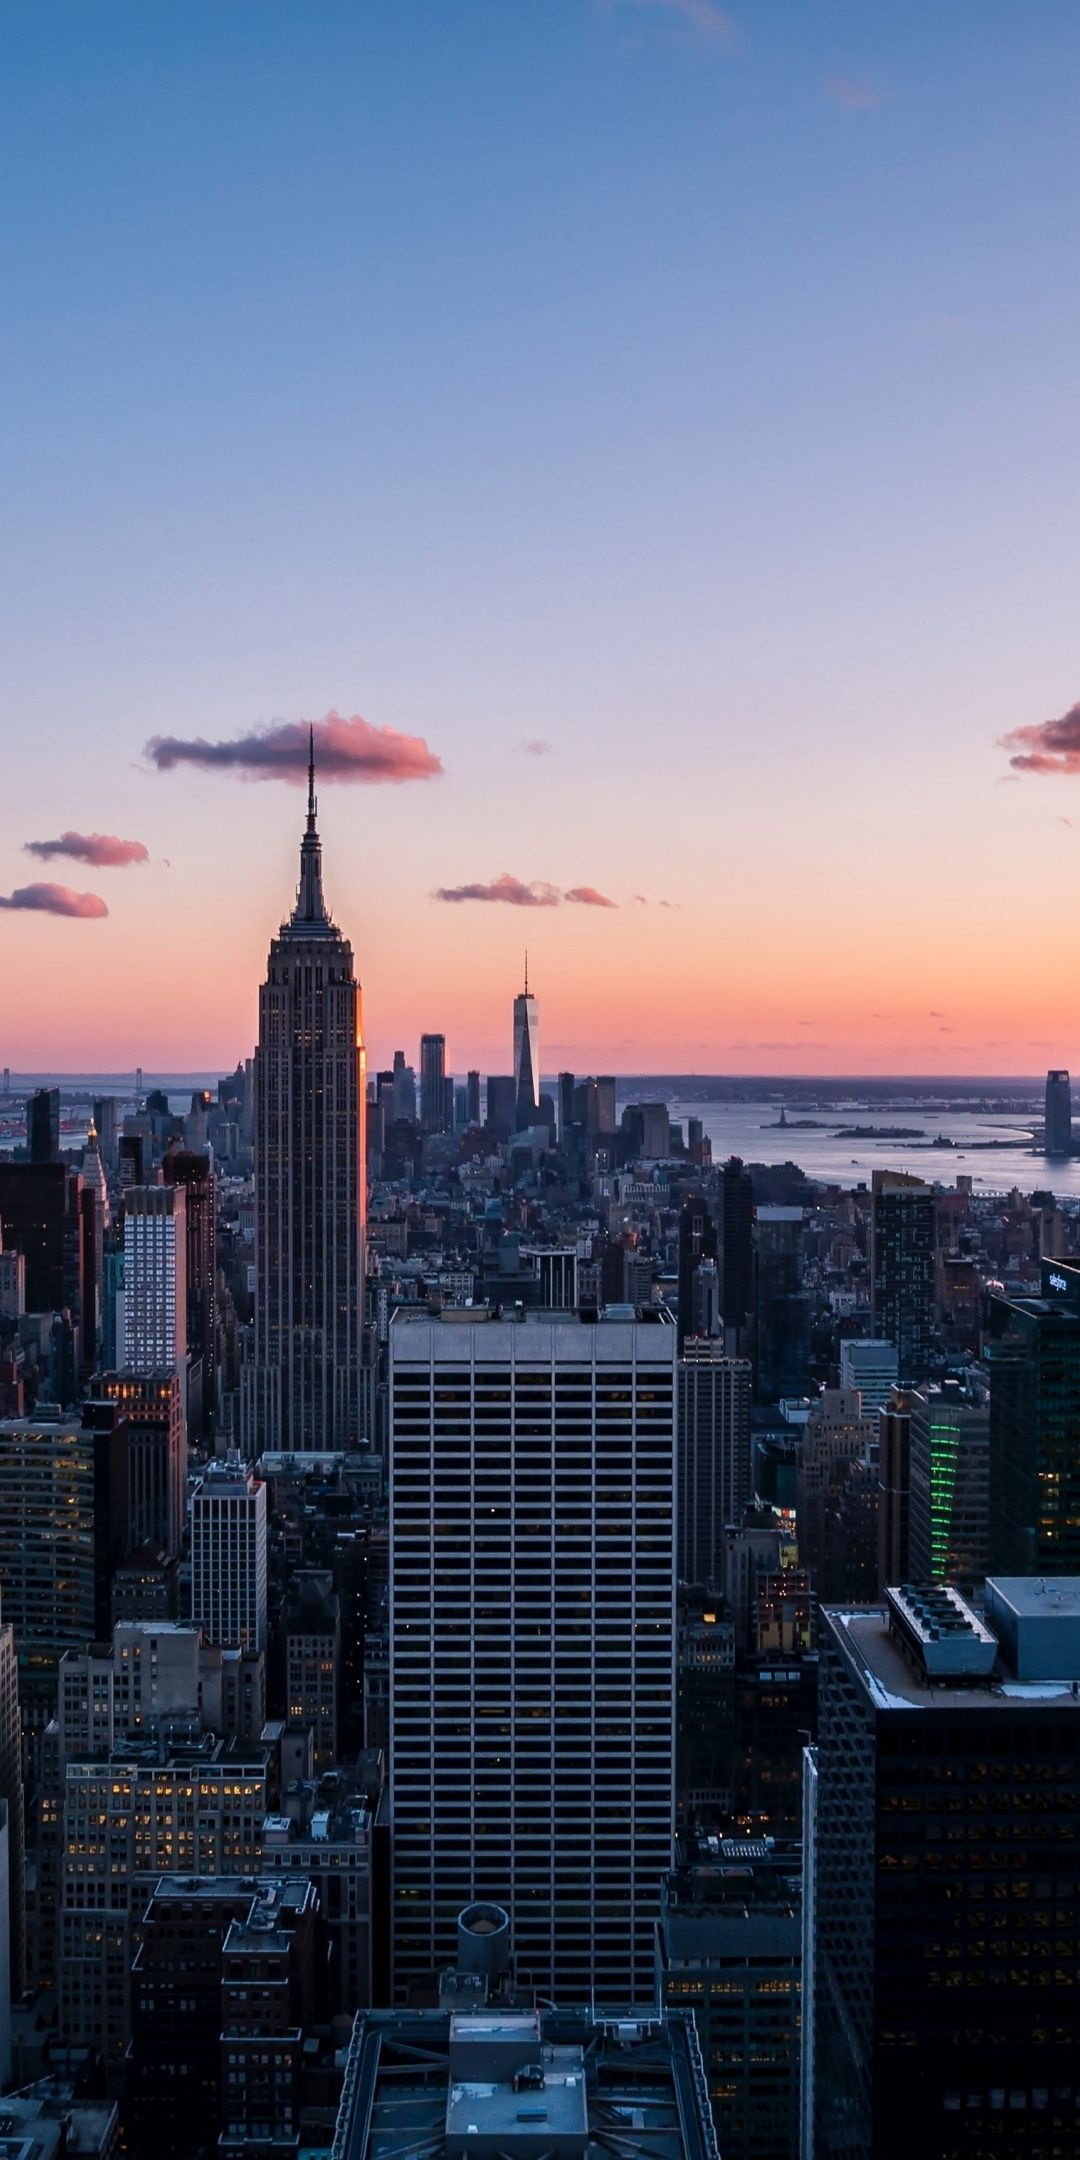 Cityscape, evening, buildings, New York, 1080x2160 wallpaper#1080x2160 #buildings #cityscape